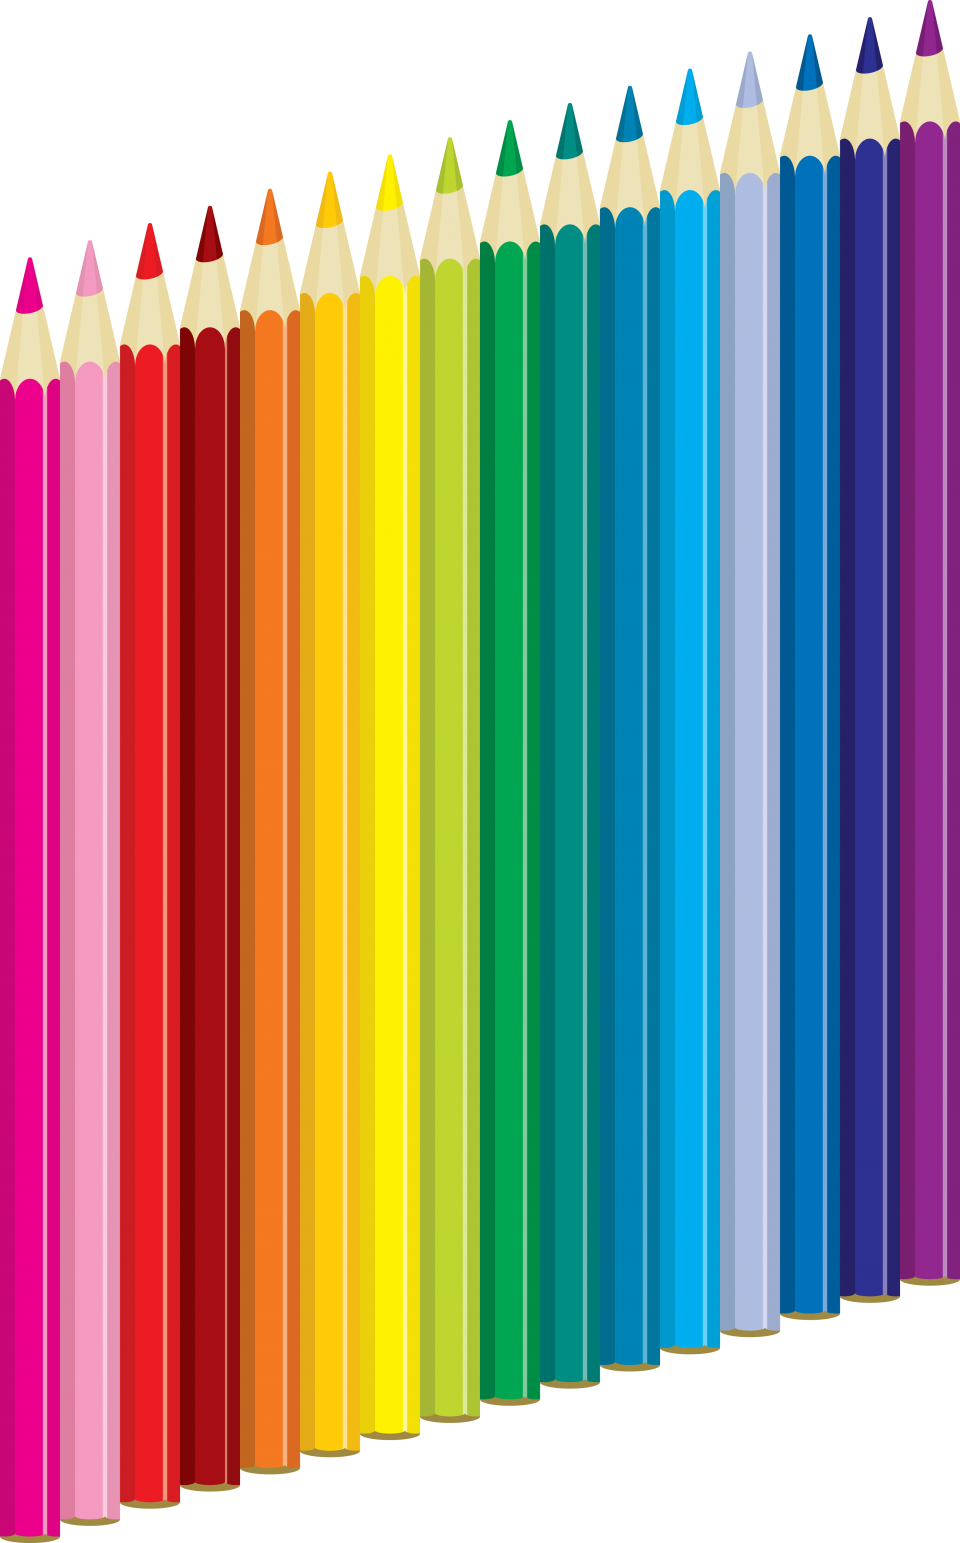 Color Pencil's PNG Image